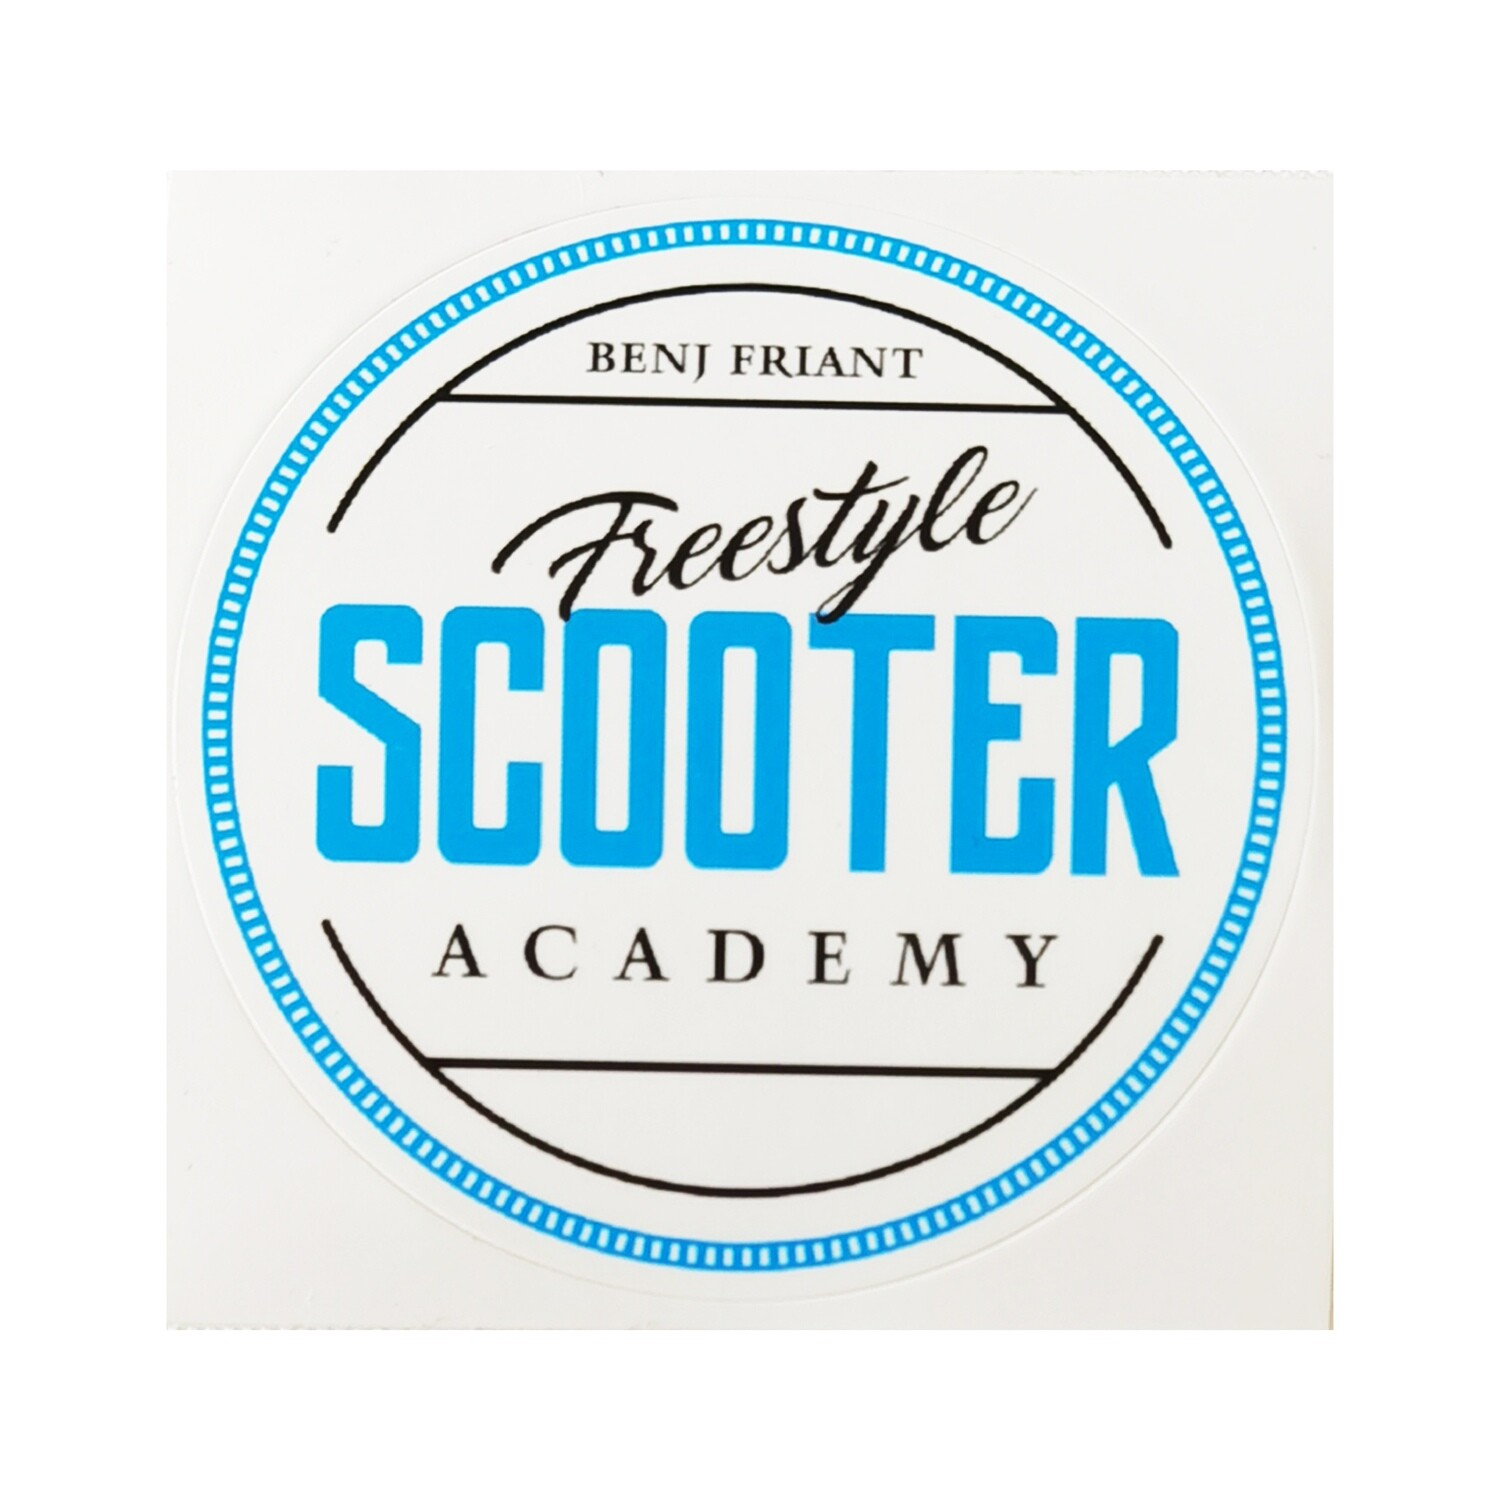 Sticker Freestyle Scooter Academy